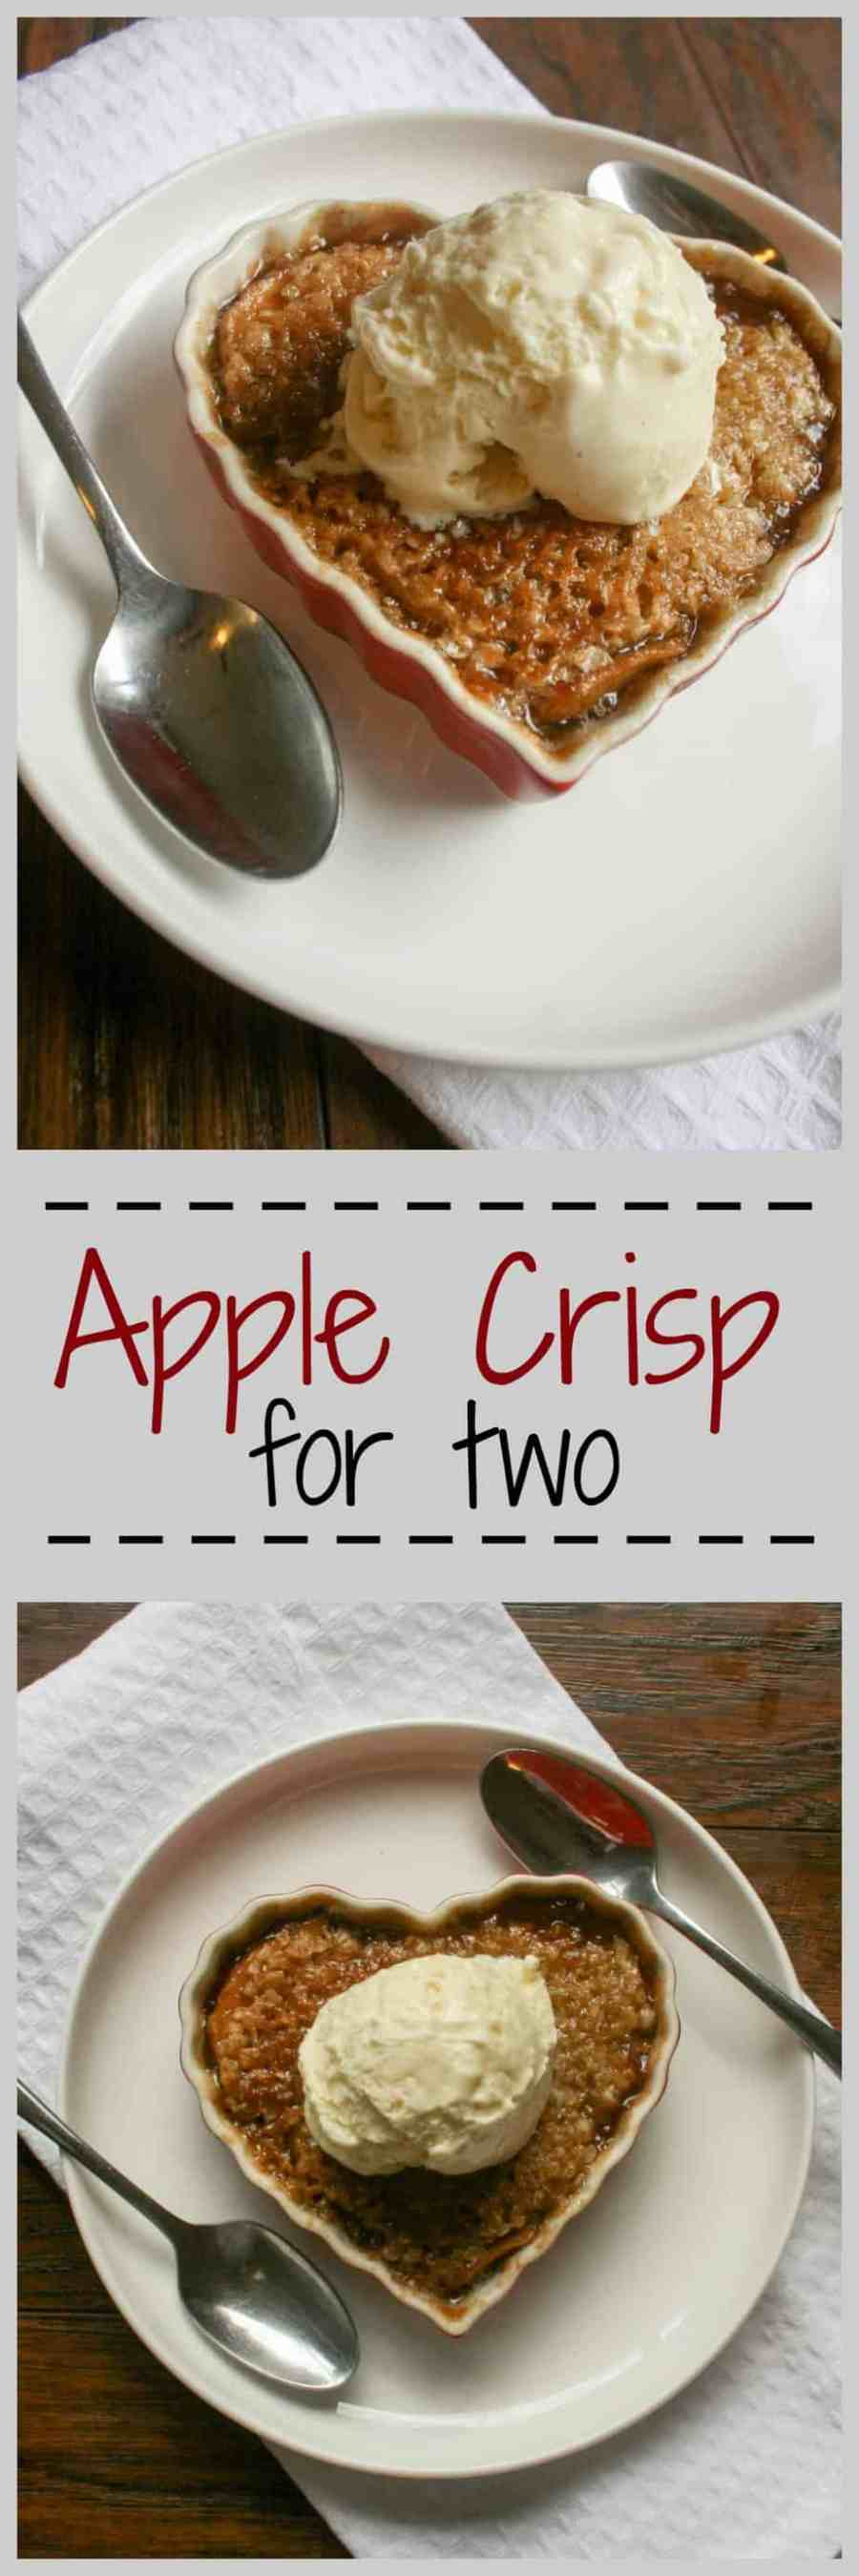 Apple Crisp for 2 is the perfect fall comfort food that you can eat all in one sitting. Easily make this for a crowd or just you and your loved one!